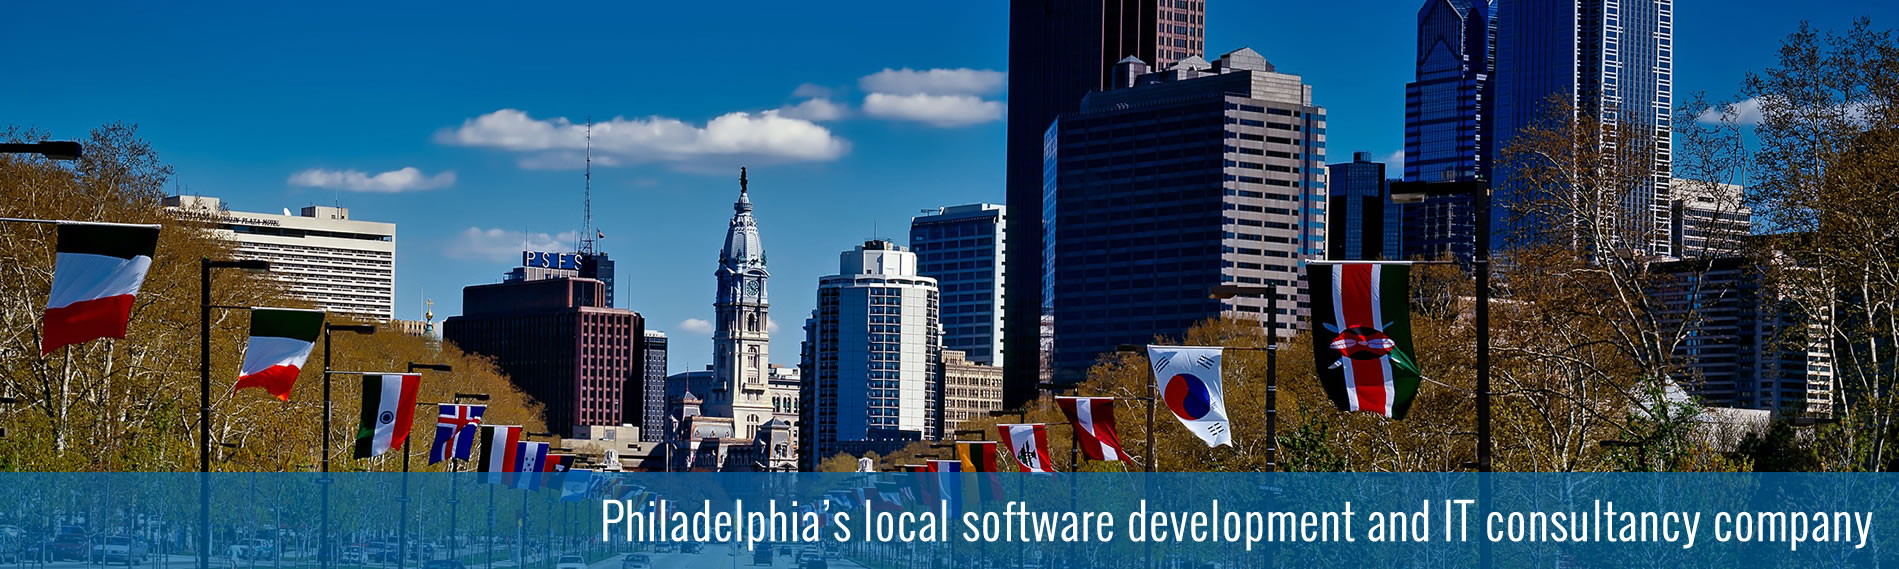 philadelphia local software development it consultancy